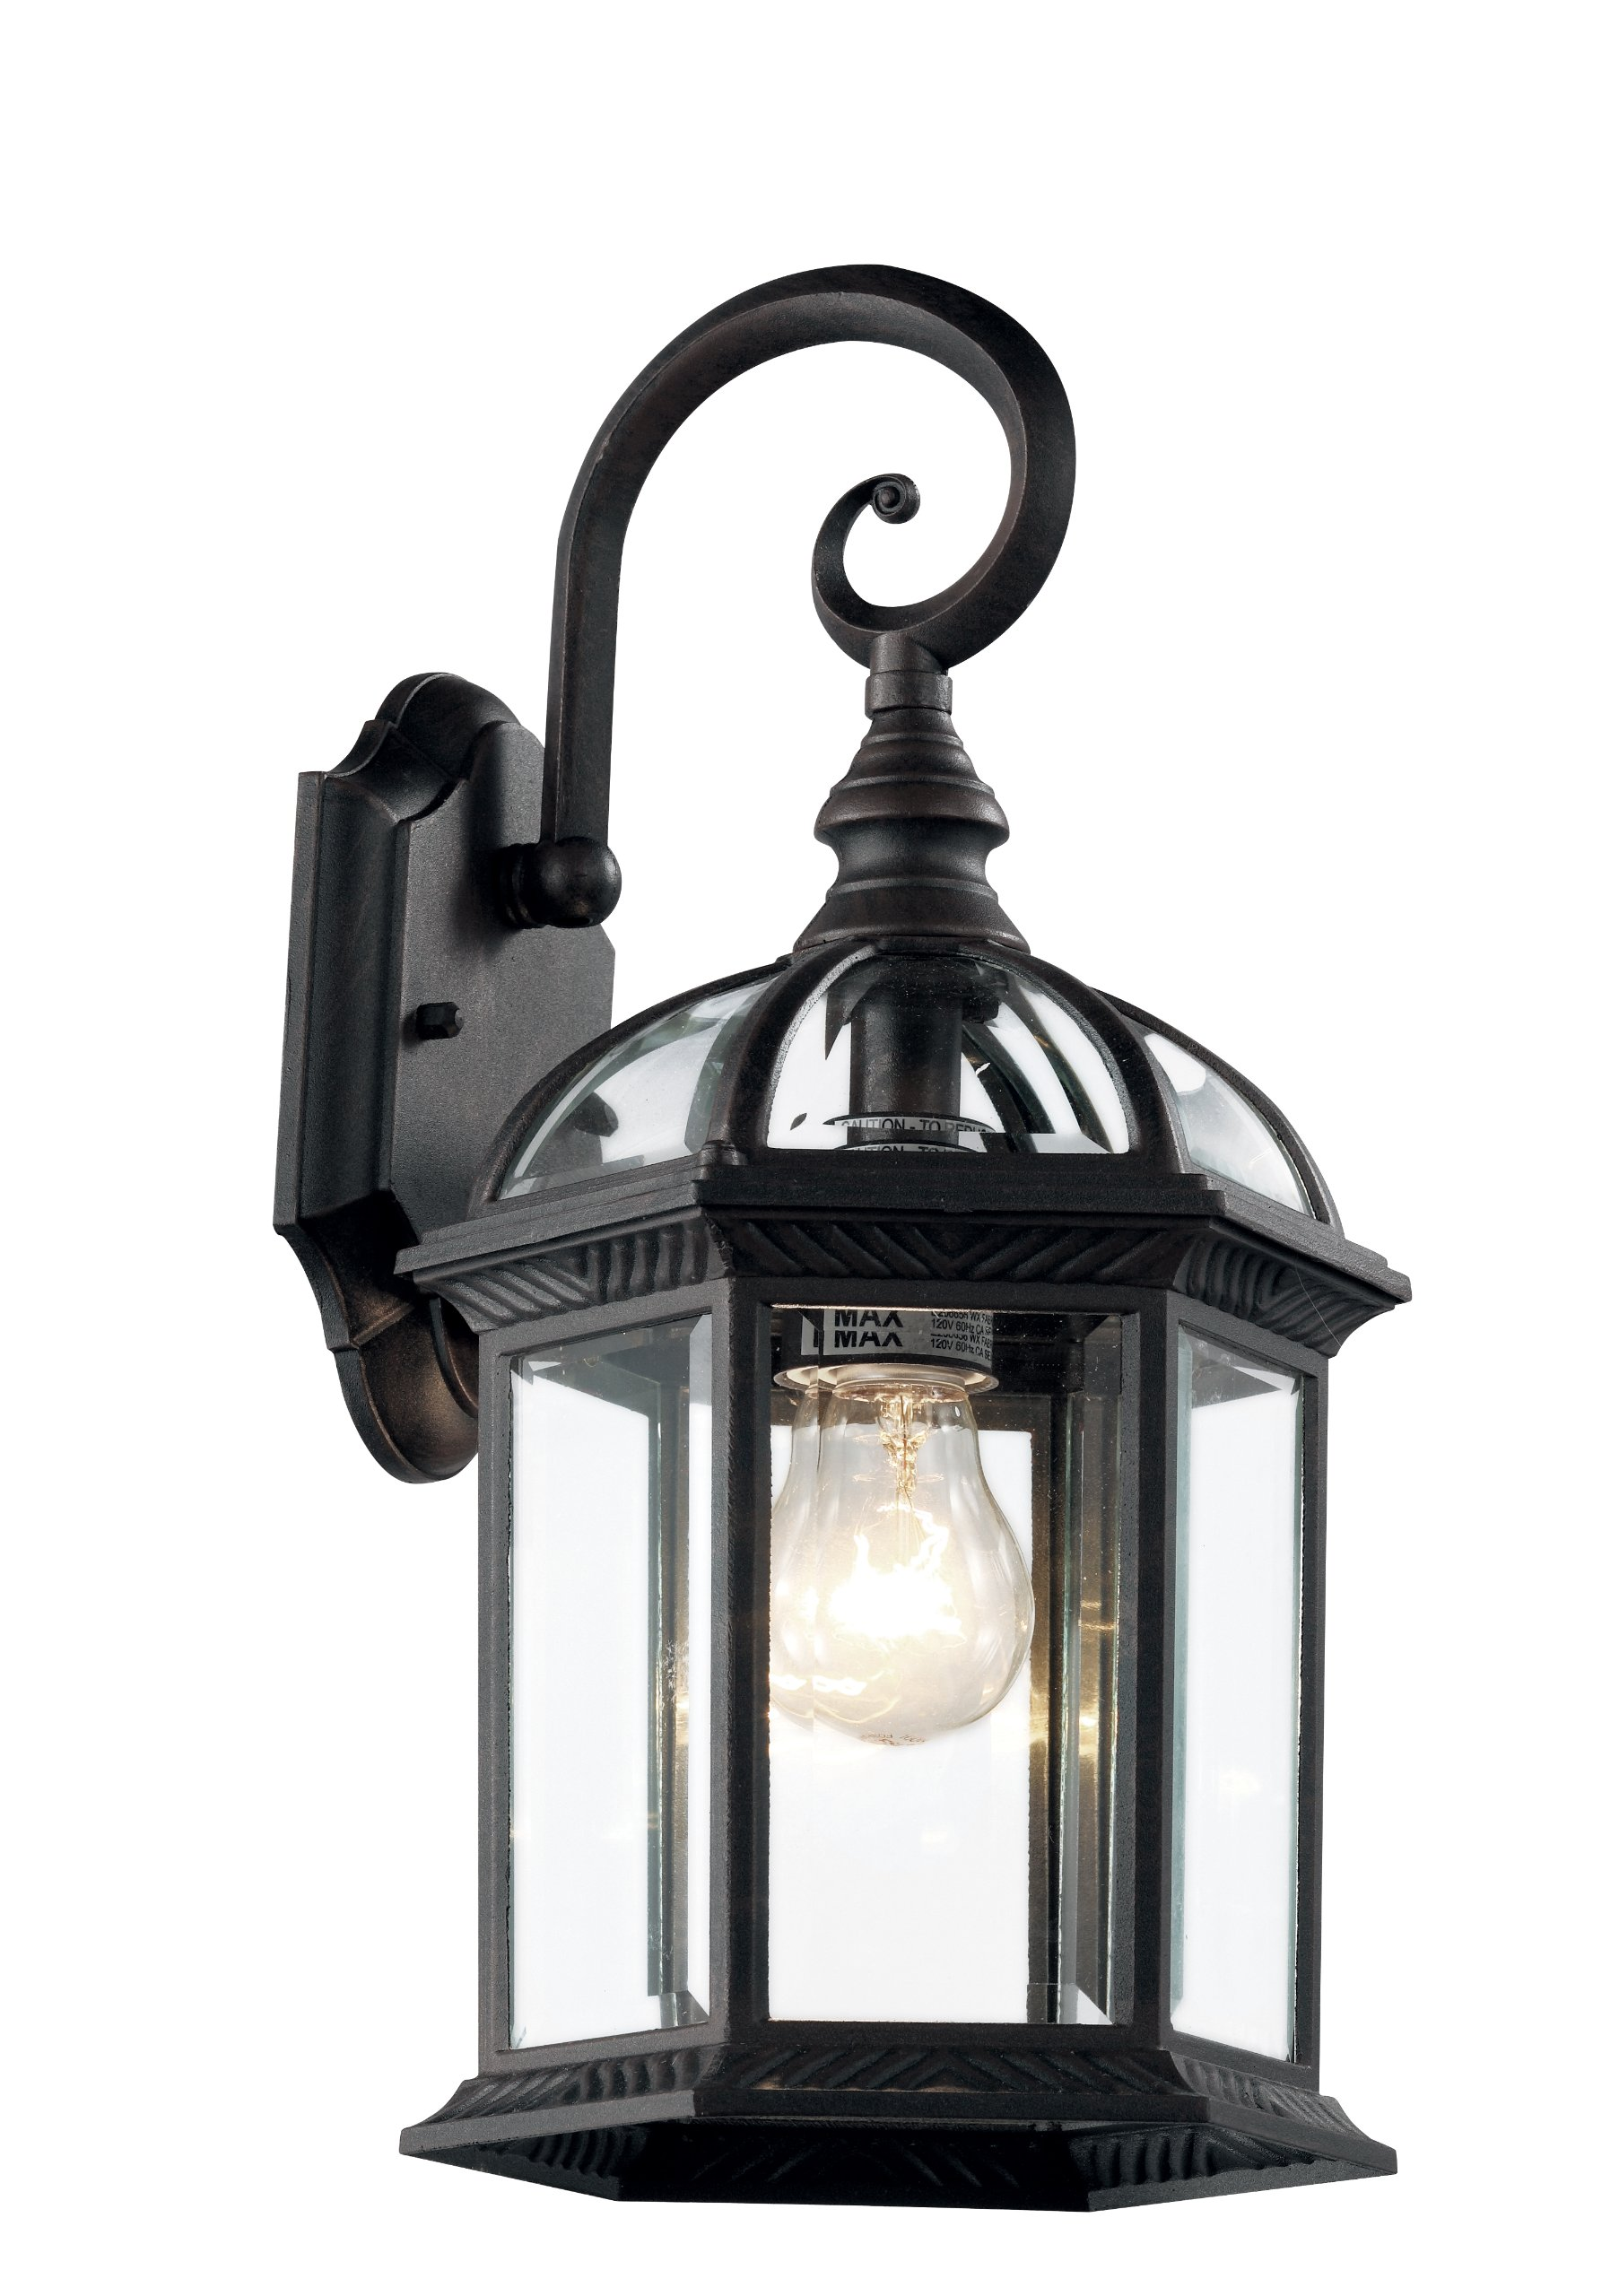 Trans Globe Lighting 4181 BK Outdoor Wentworth 16'' Wall Lantern, Black by Trans Globe Lighting